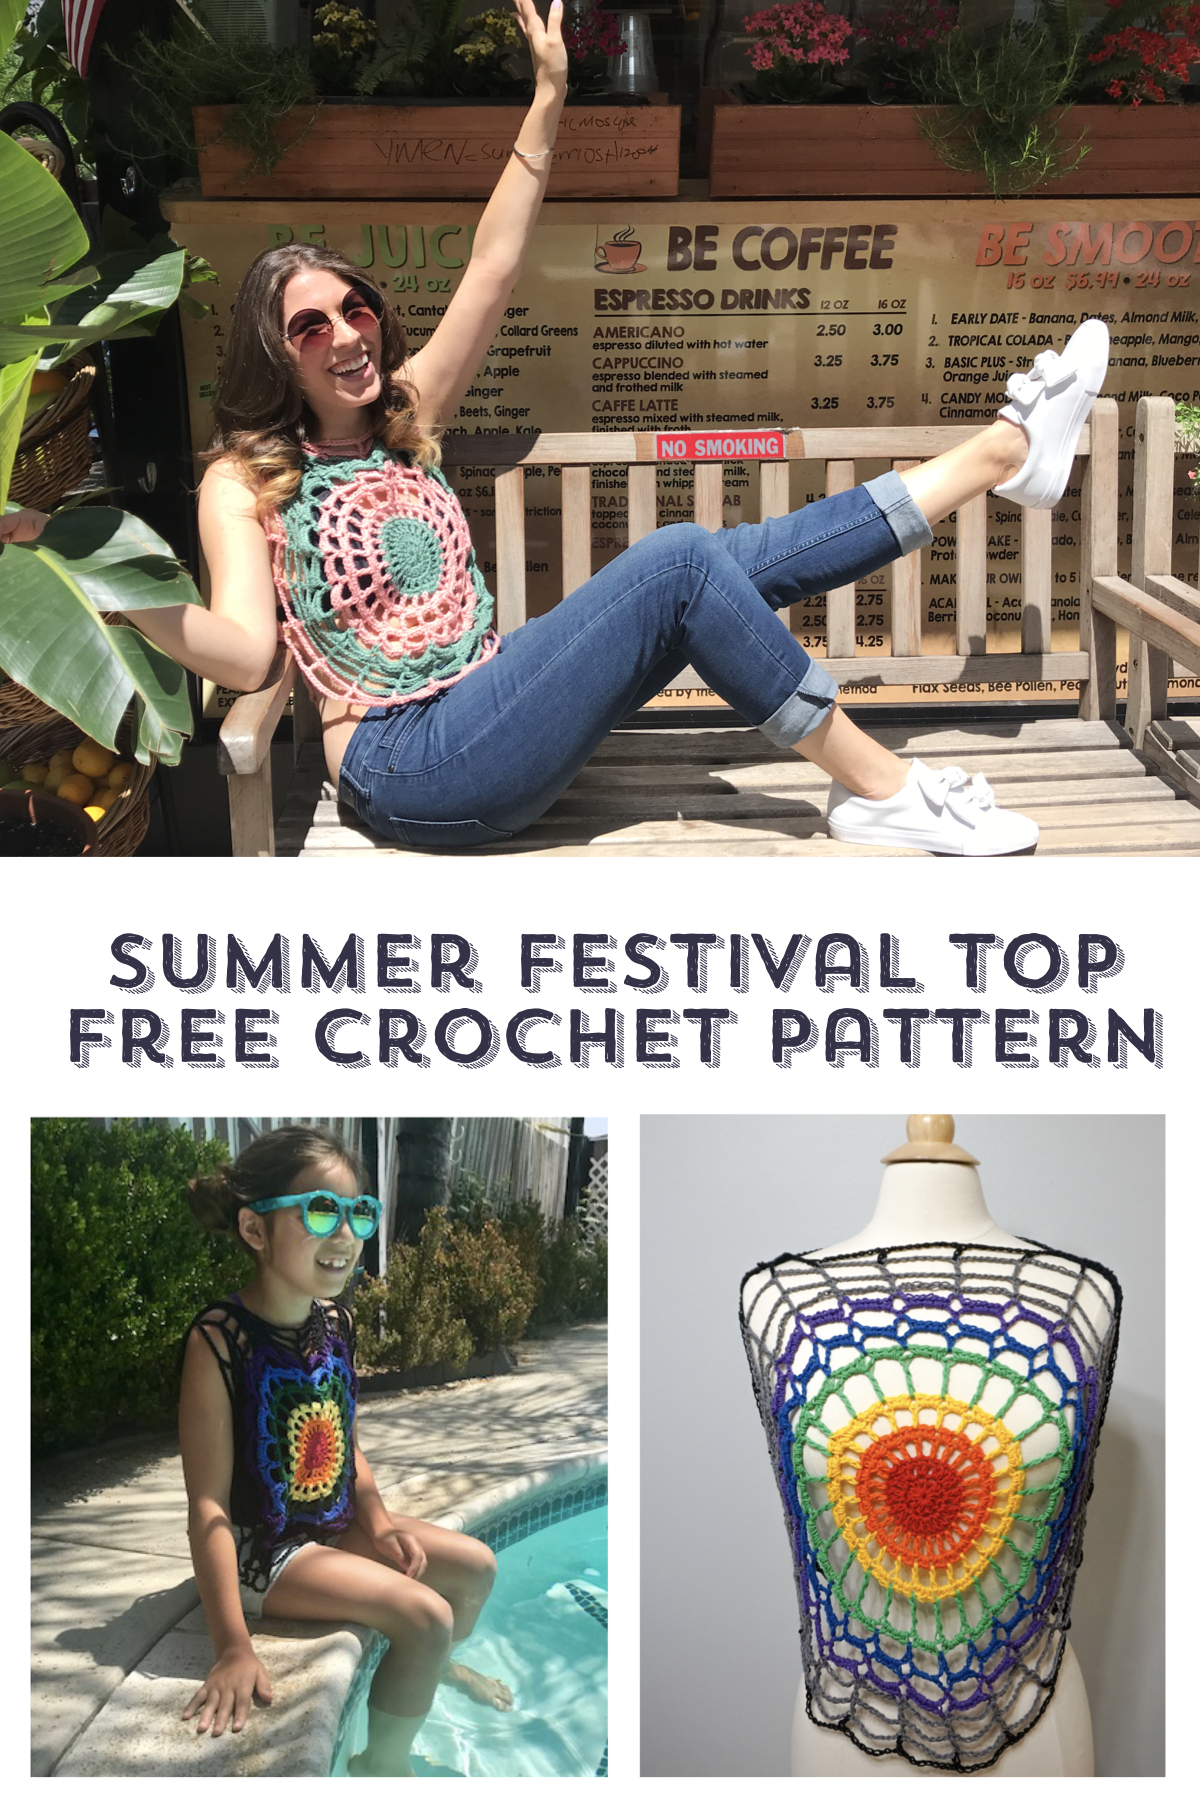 beach-side-crochet-top-free-pattern-stitch-and-hustle-5.png